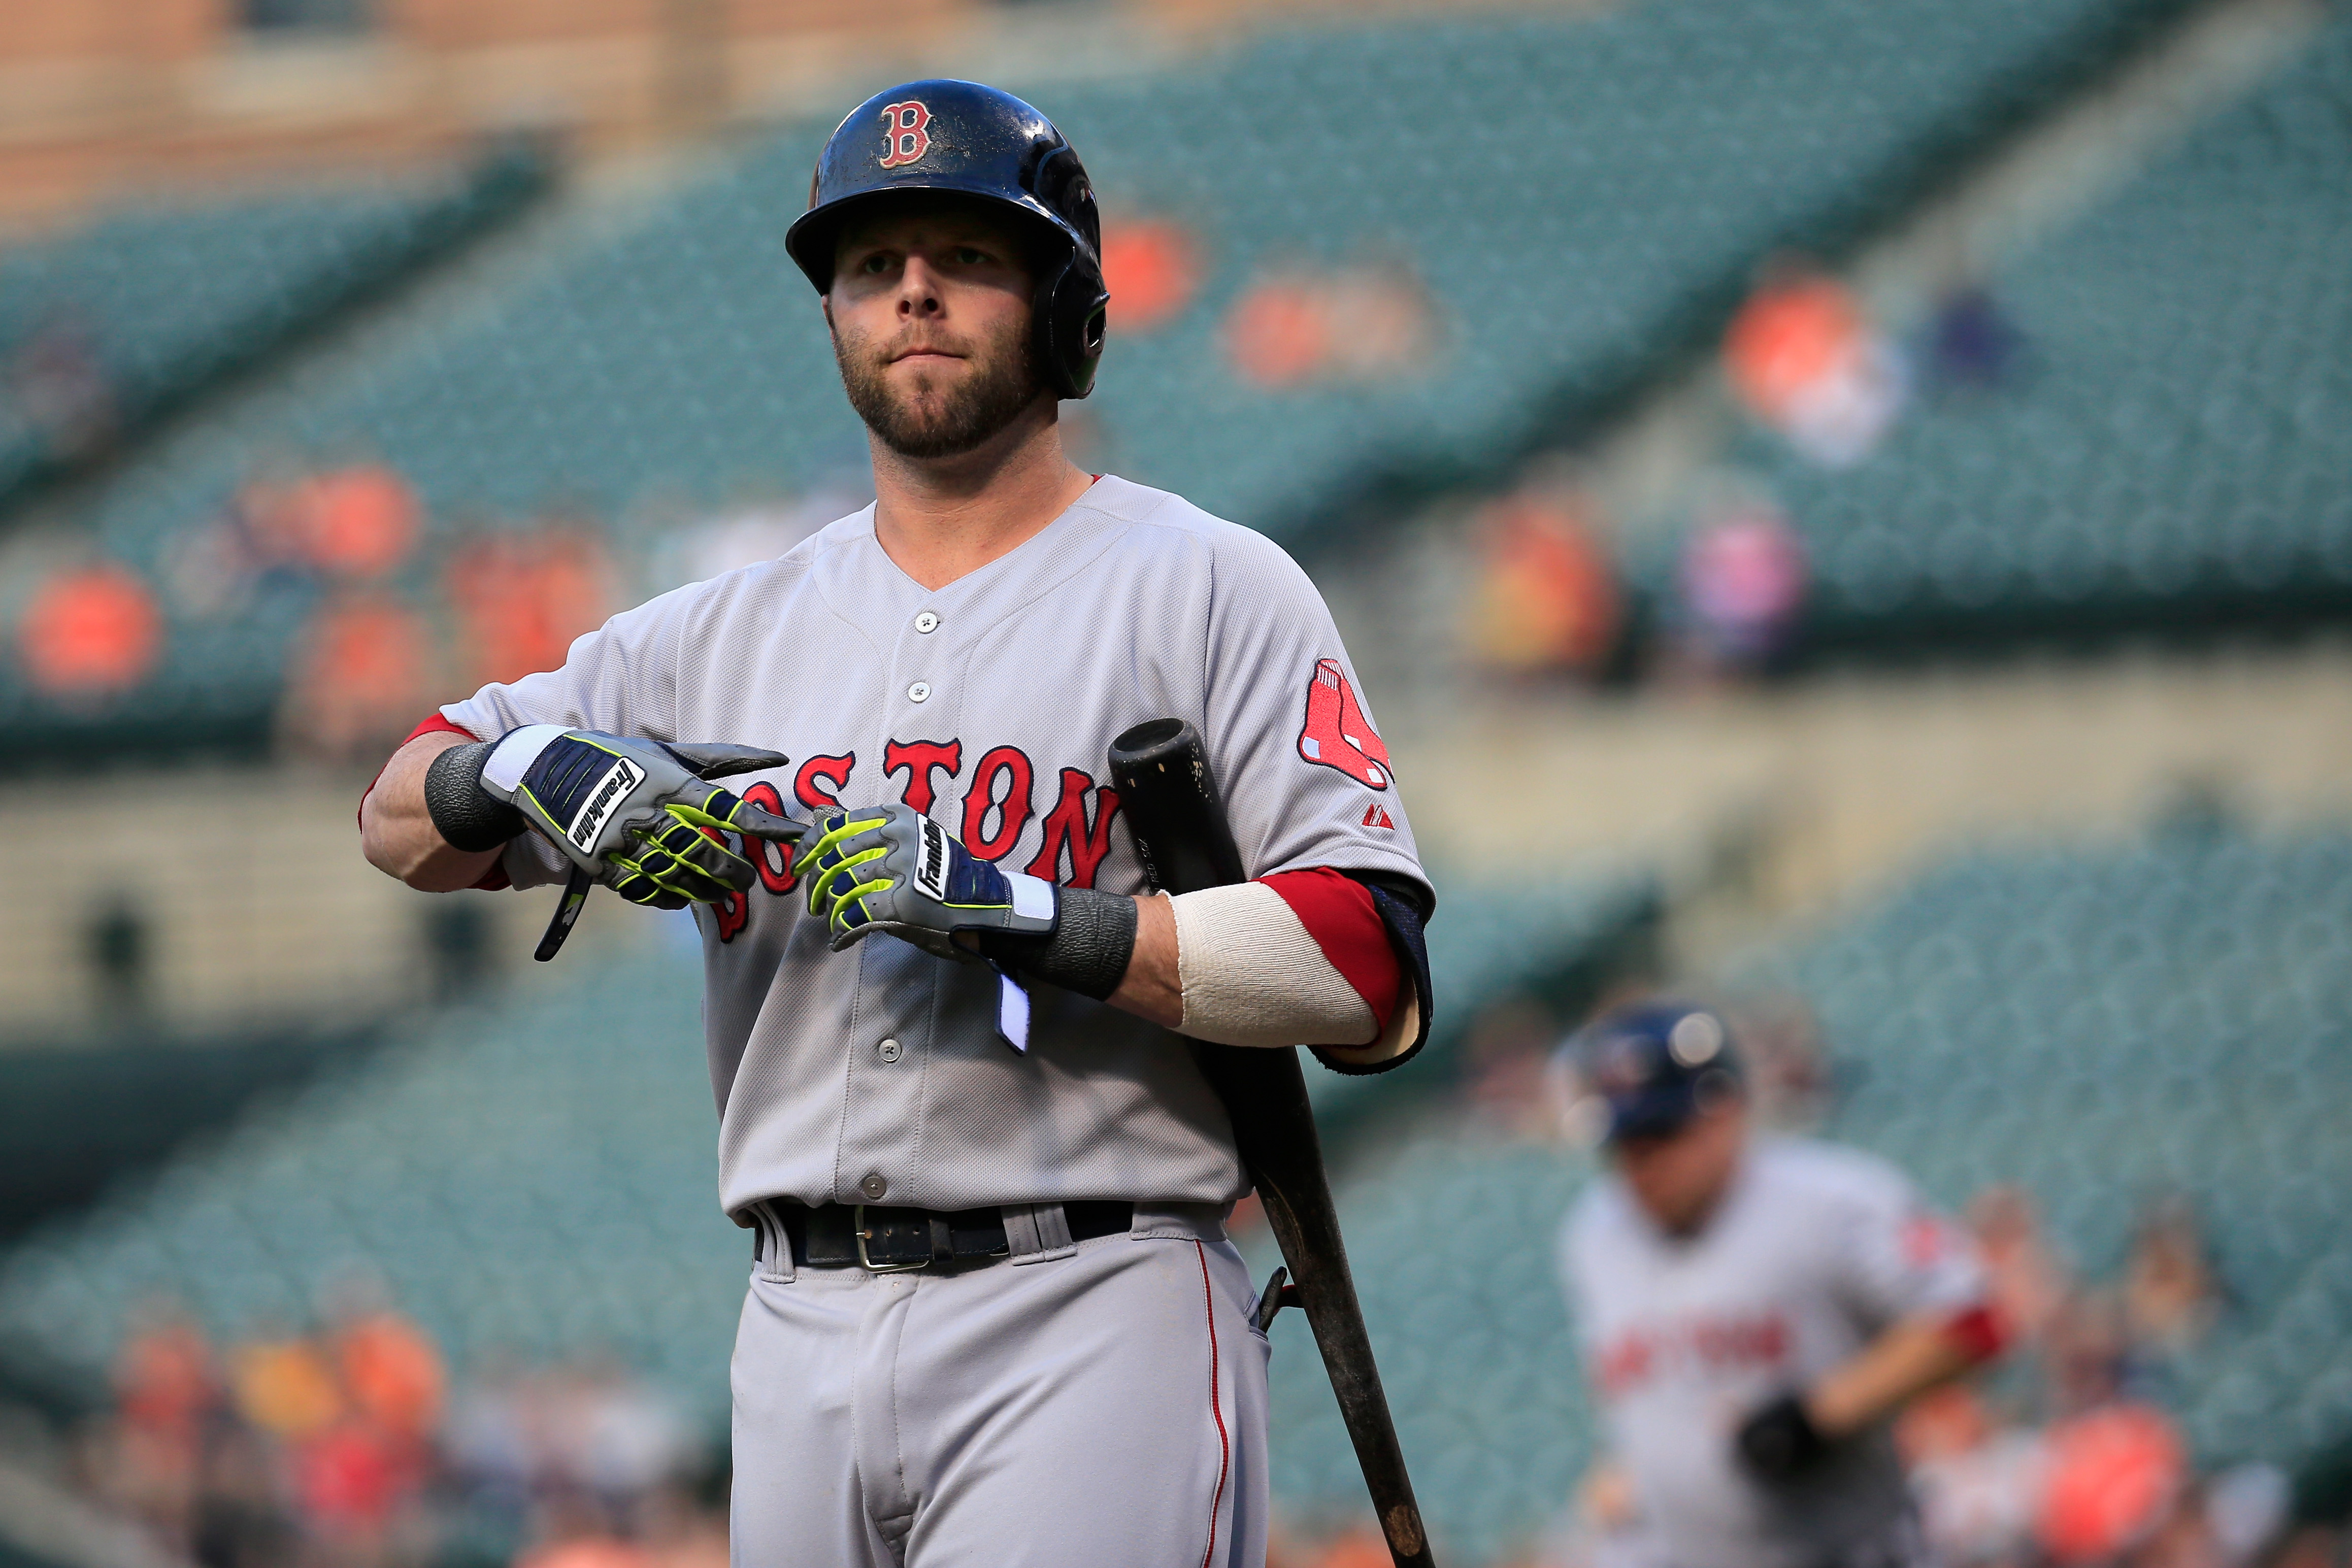 pedroia_road_getty-thumb-4633x3089-132101.jpg